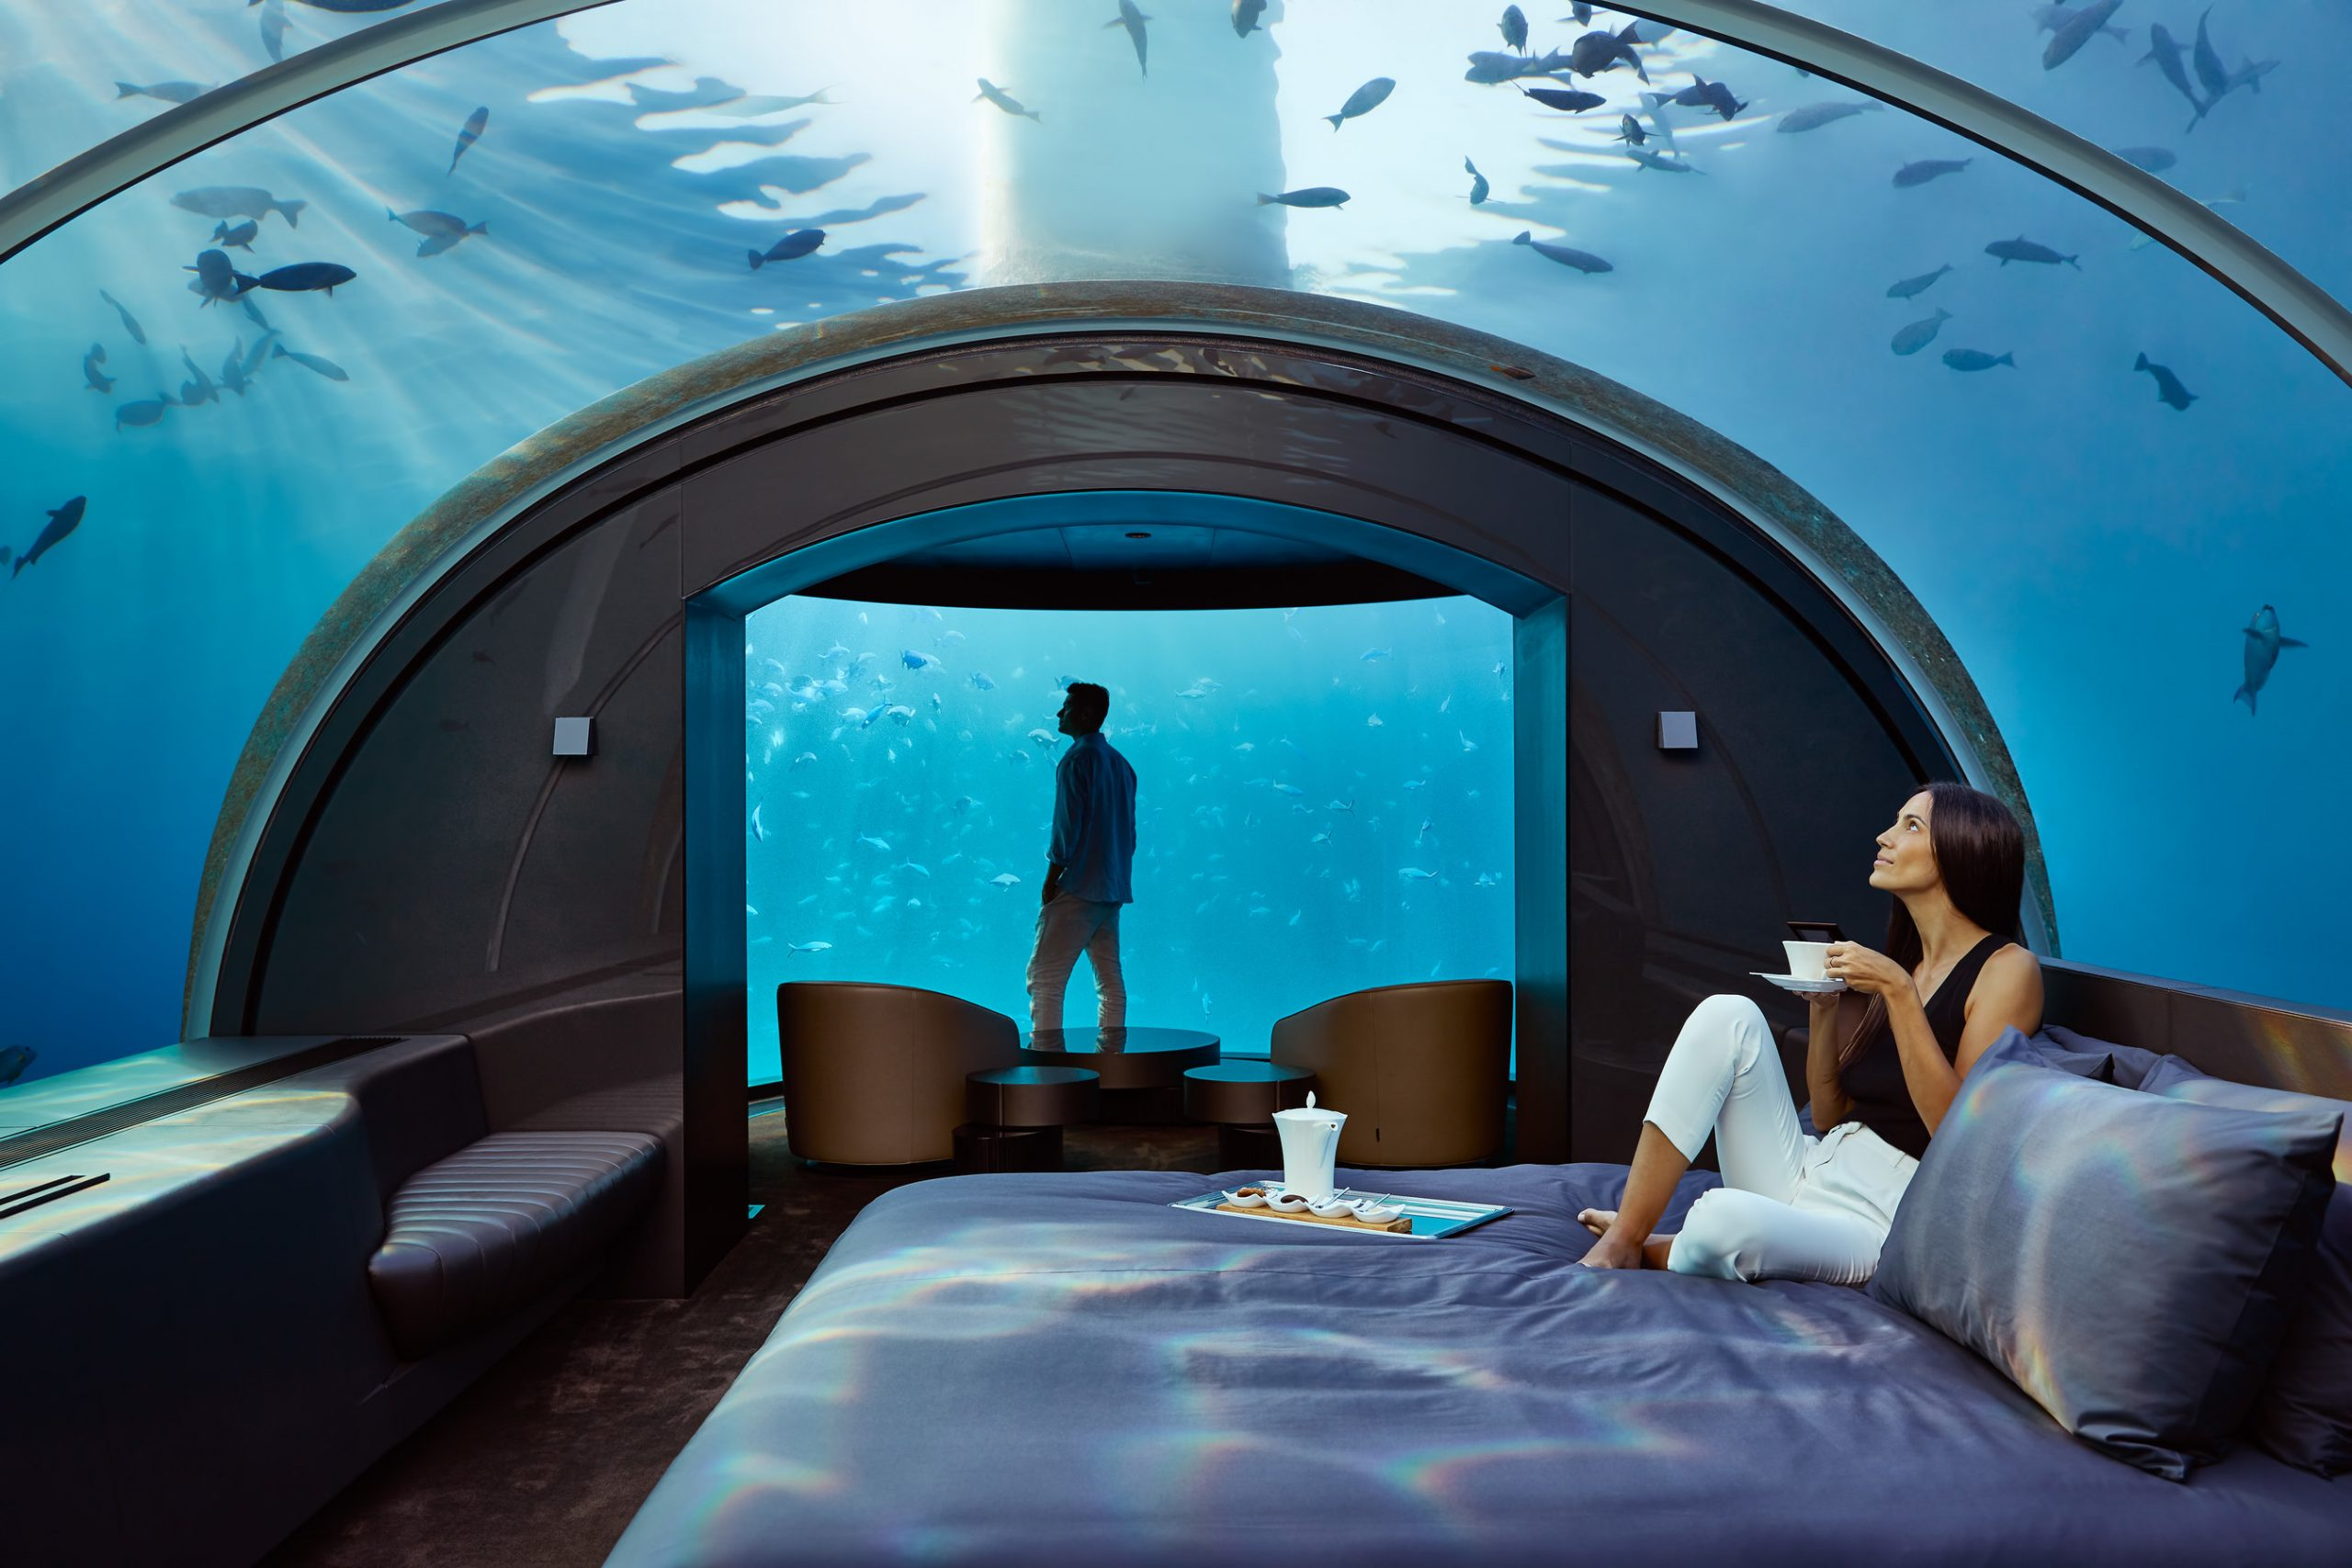 Hilton's Maldives resorts invite travellers to experience unparalleled personalised service, distinctive experiences